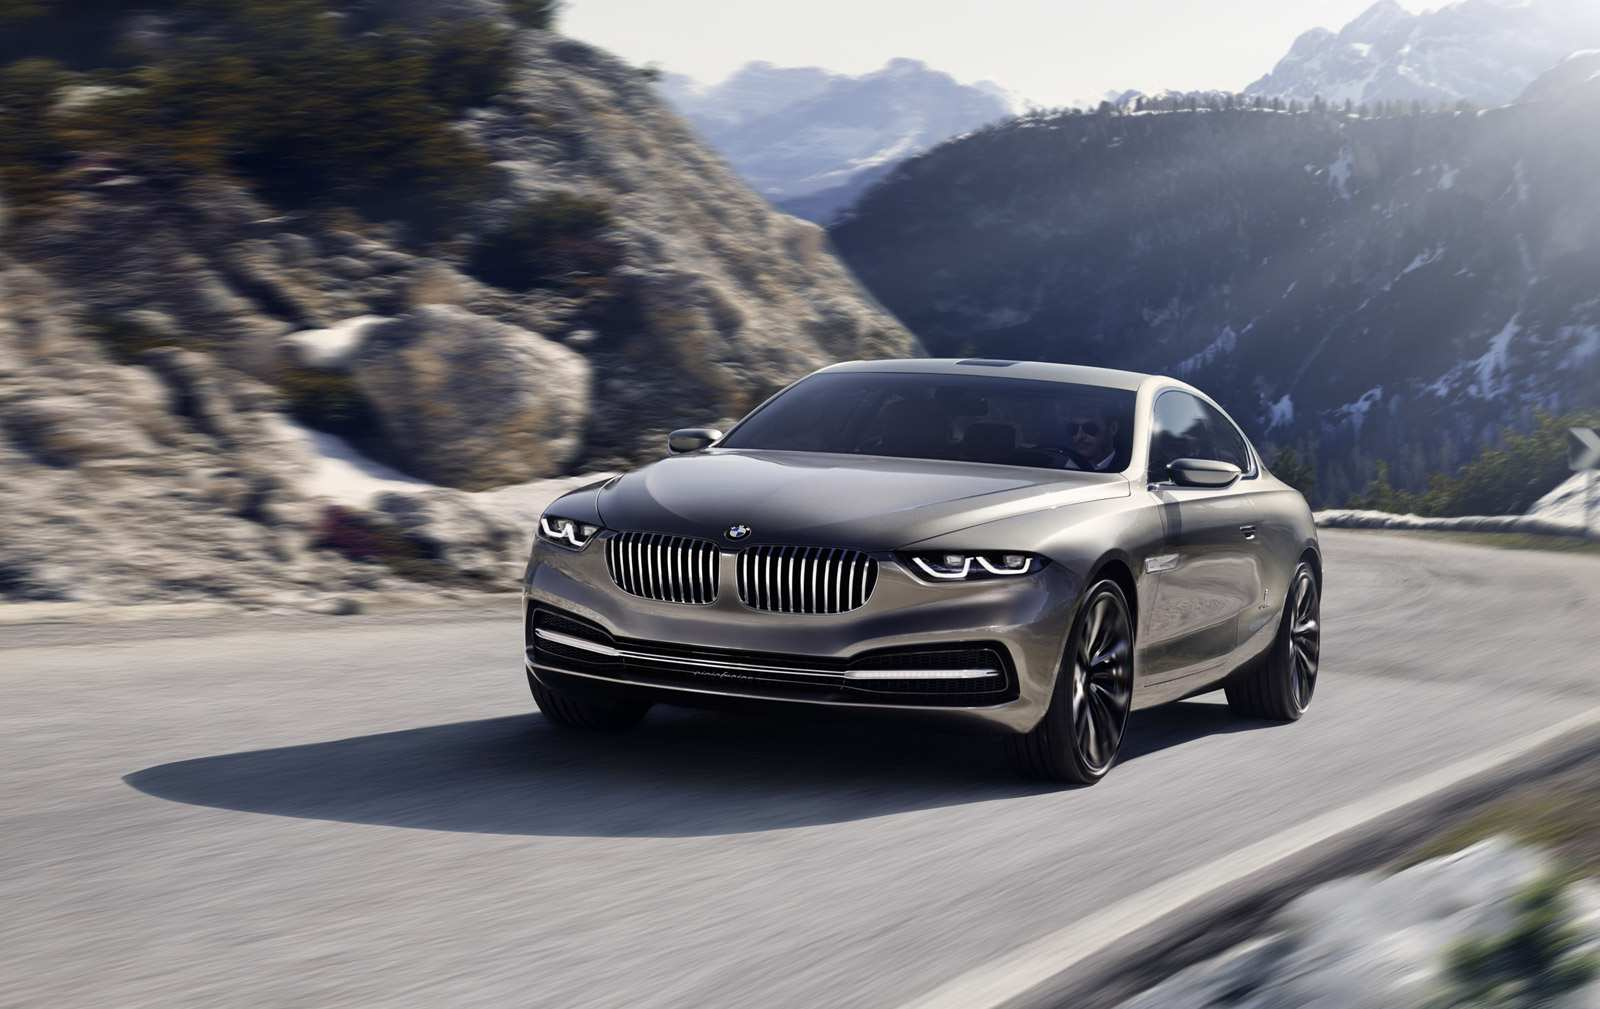 75 The Best BMW New Models 2020 Configurations